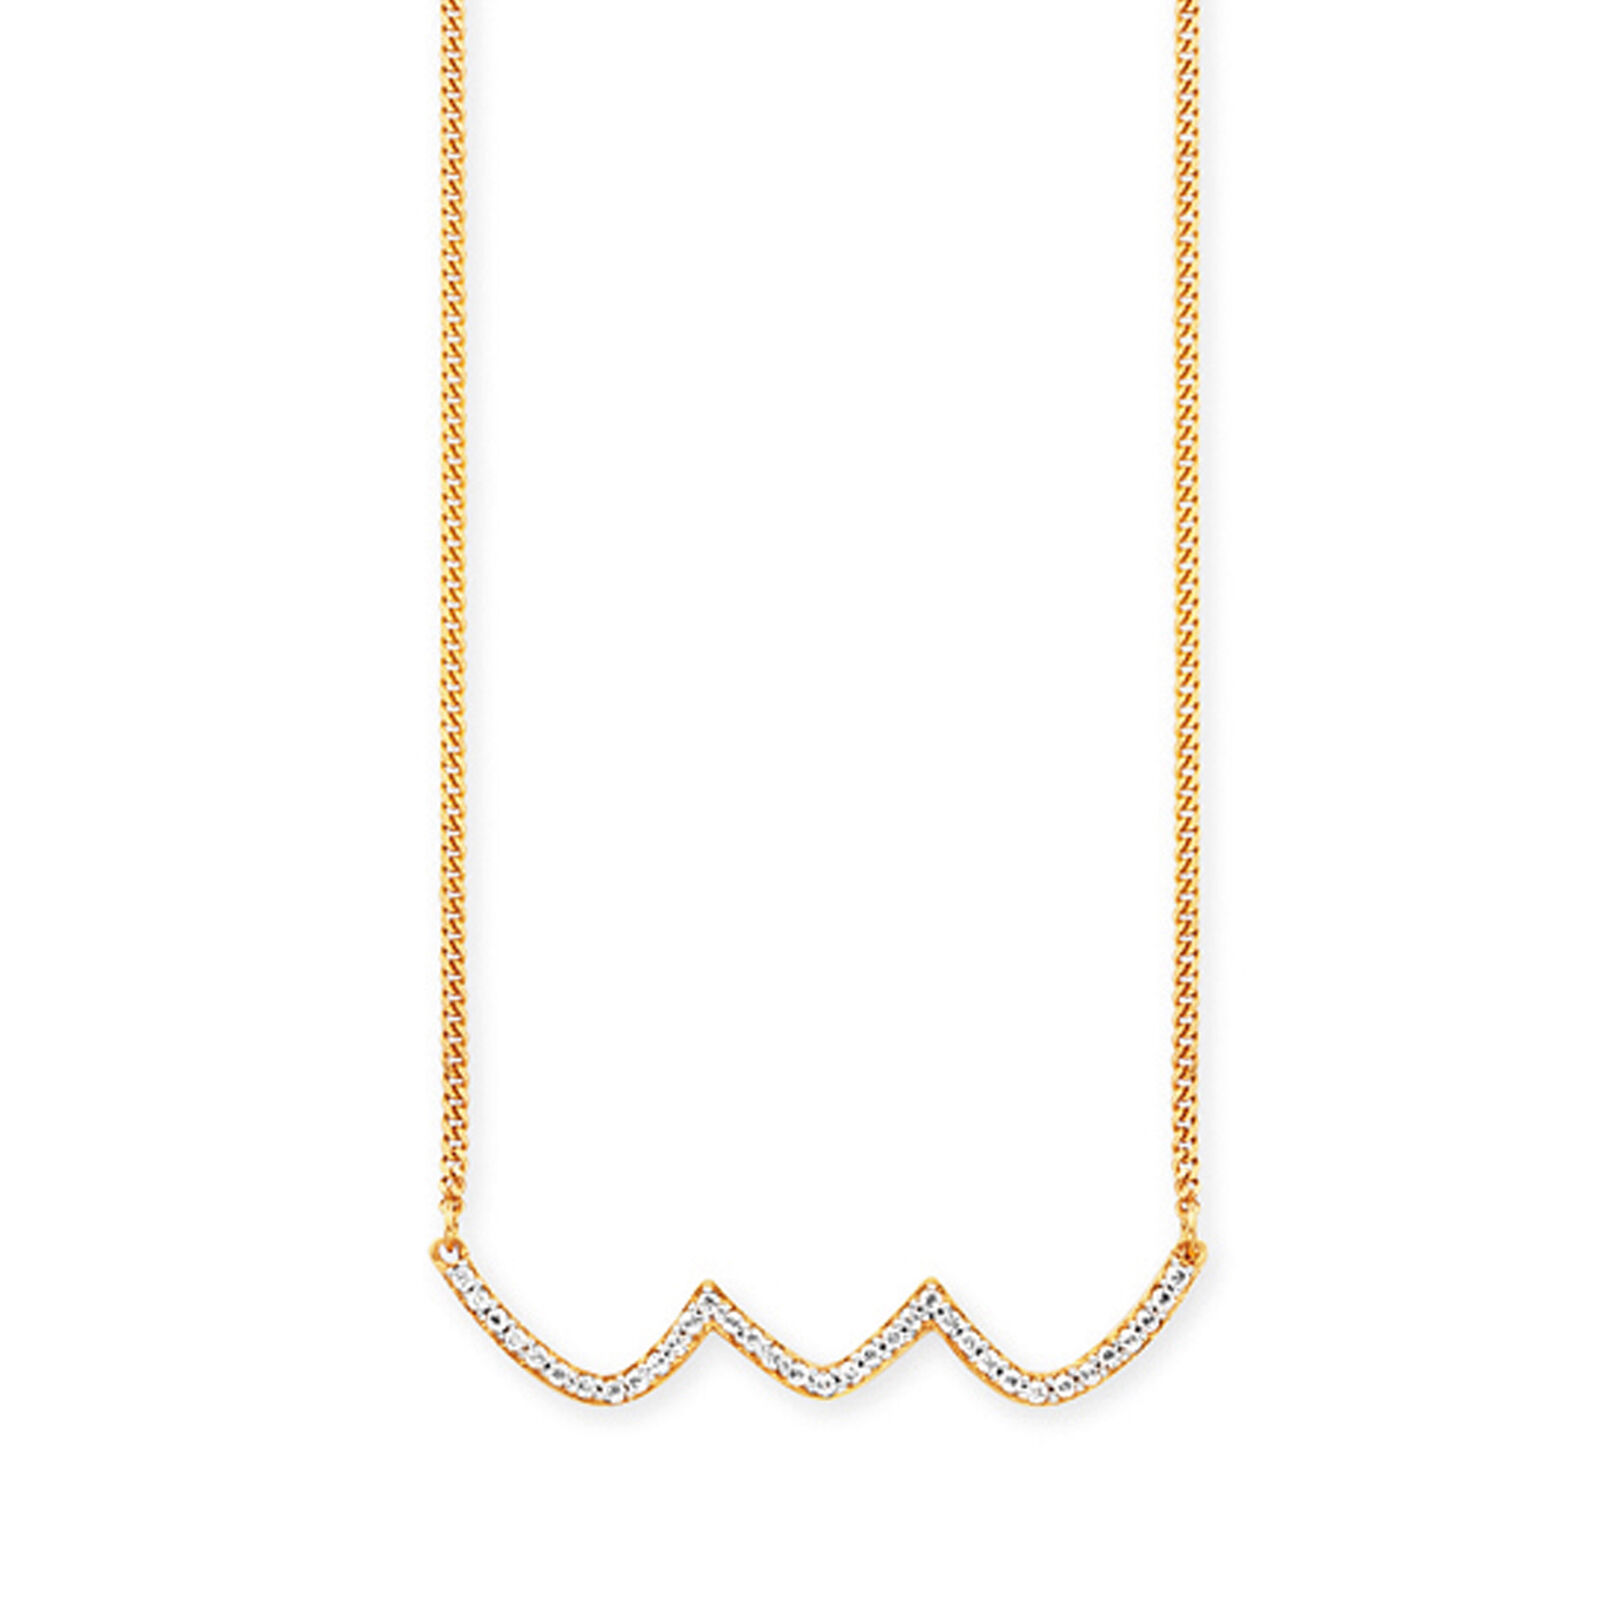 CAI donna Collier 925 925 925 Sterling argentoo dorato Topaz Onde DONNA NUOVO CAI 104d6d